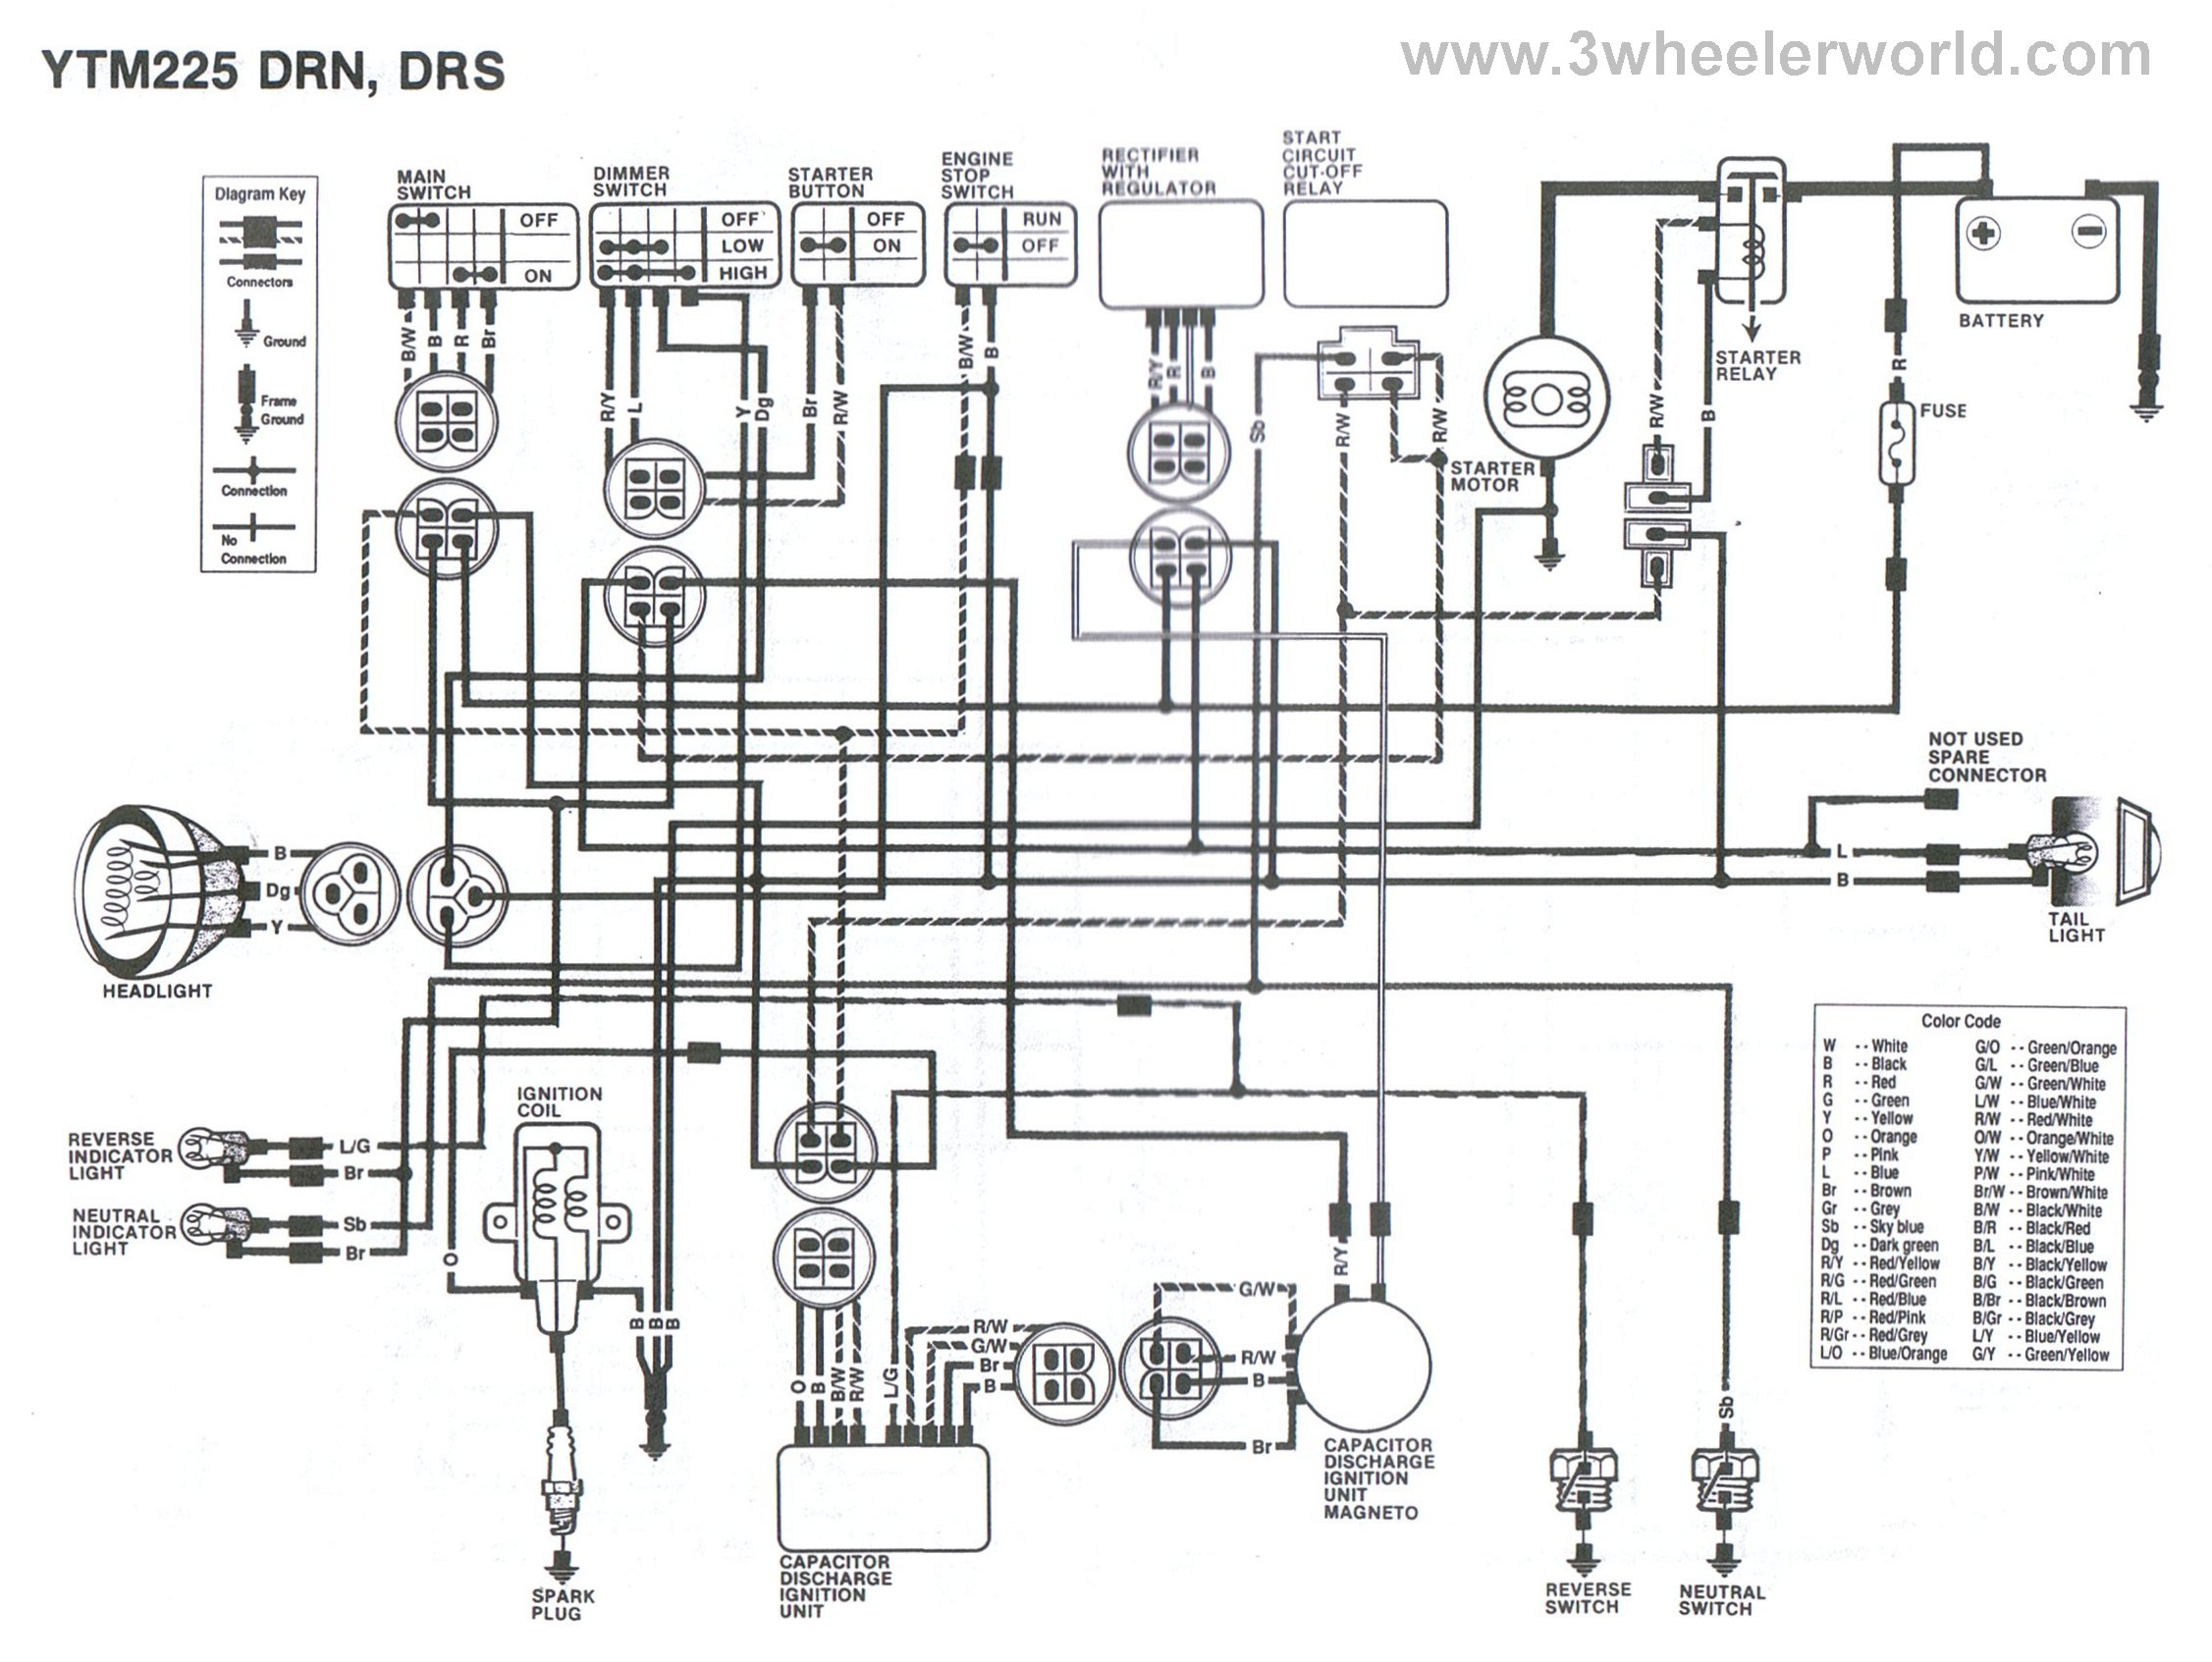 1983 cb650 wiring diagram